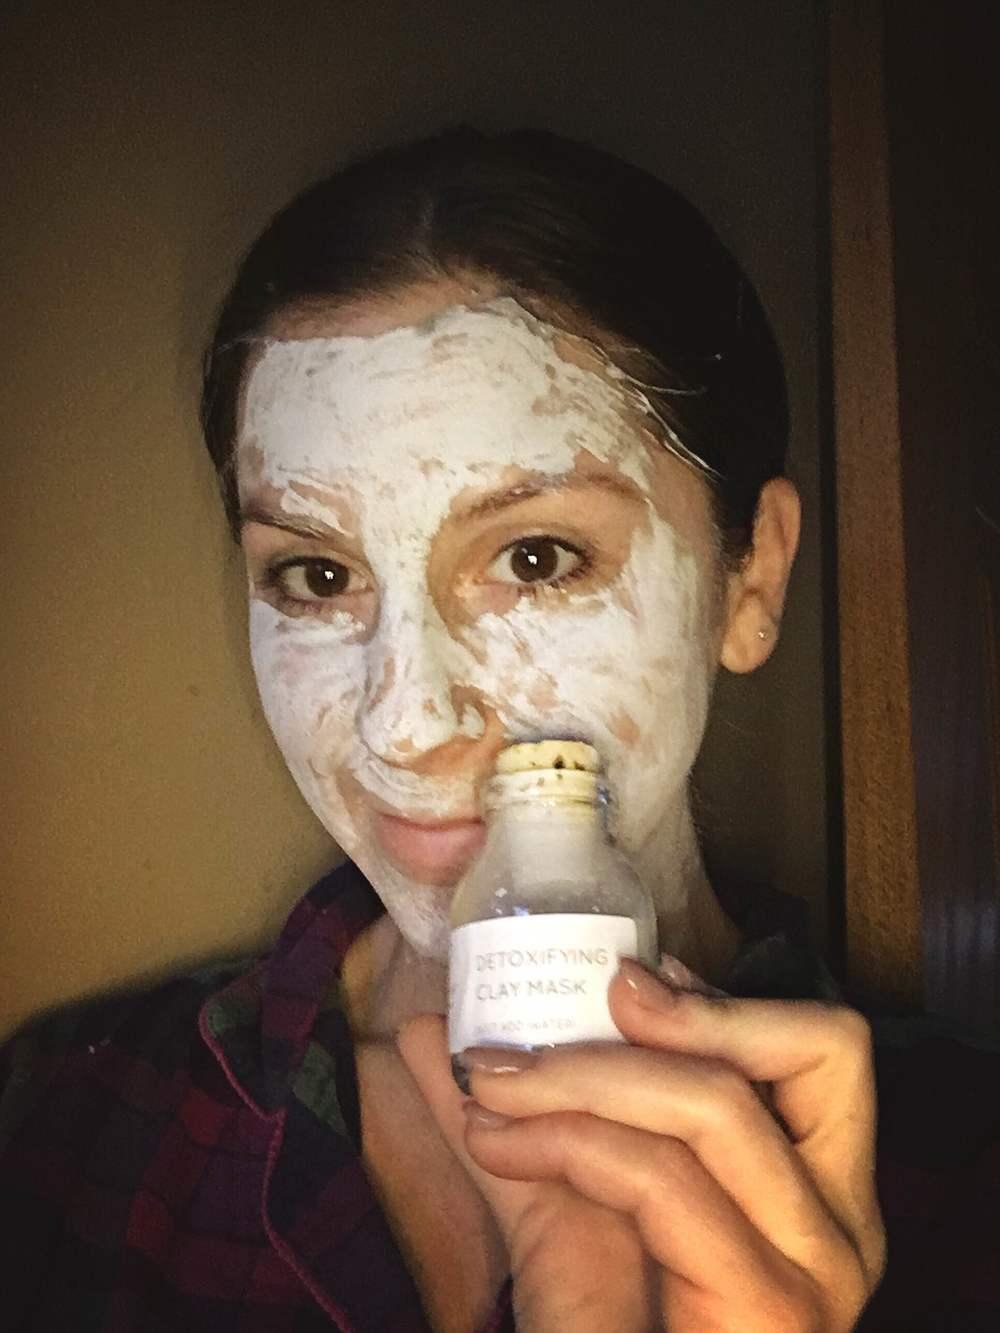 "I love to use the ""Detoxifying Clay Mask"" at least once a week for a good deep clean for my pores. It leaves my skin feeling silky smooth when all is said and done, it smells great too!"